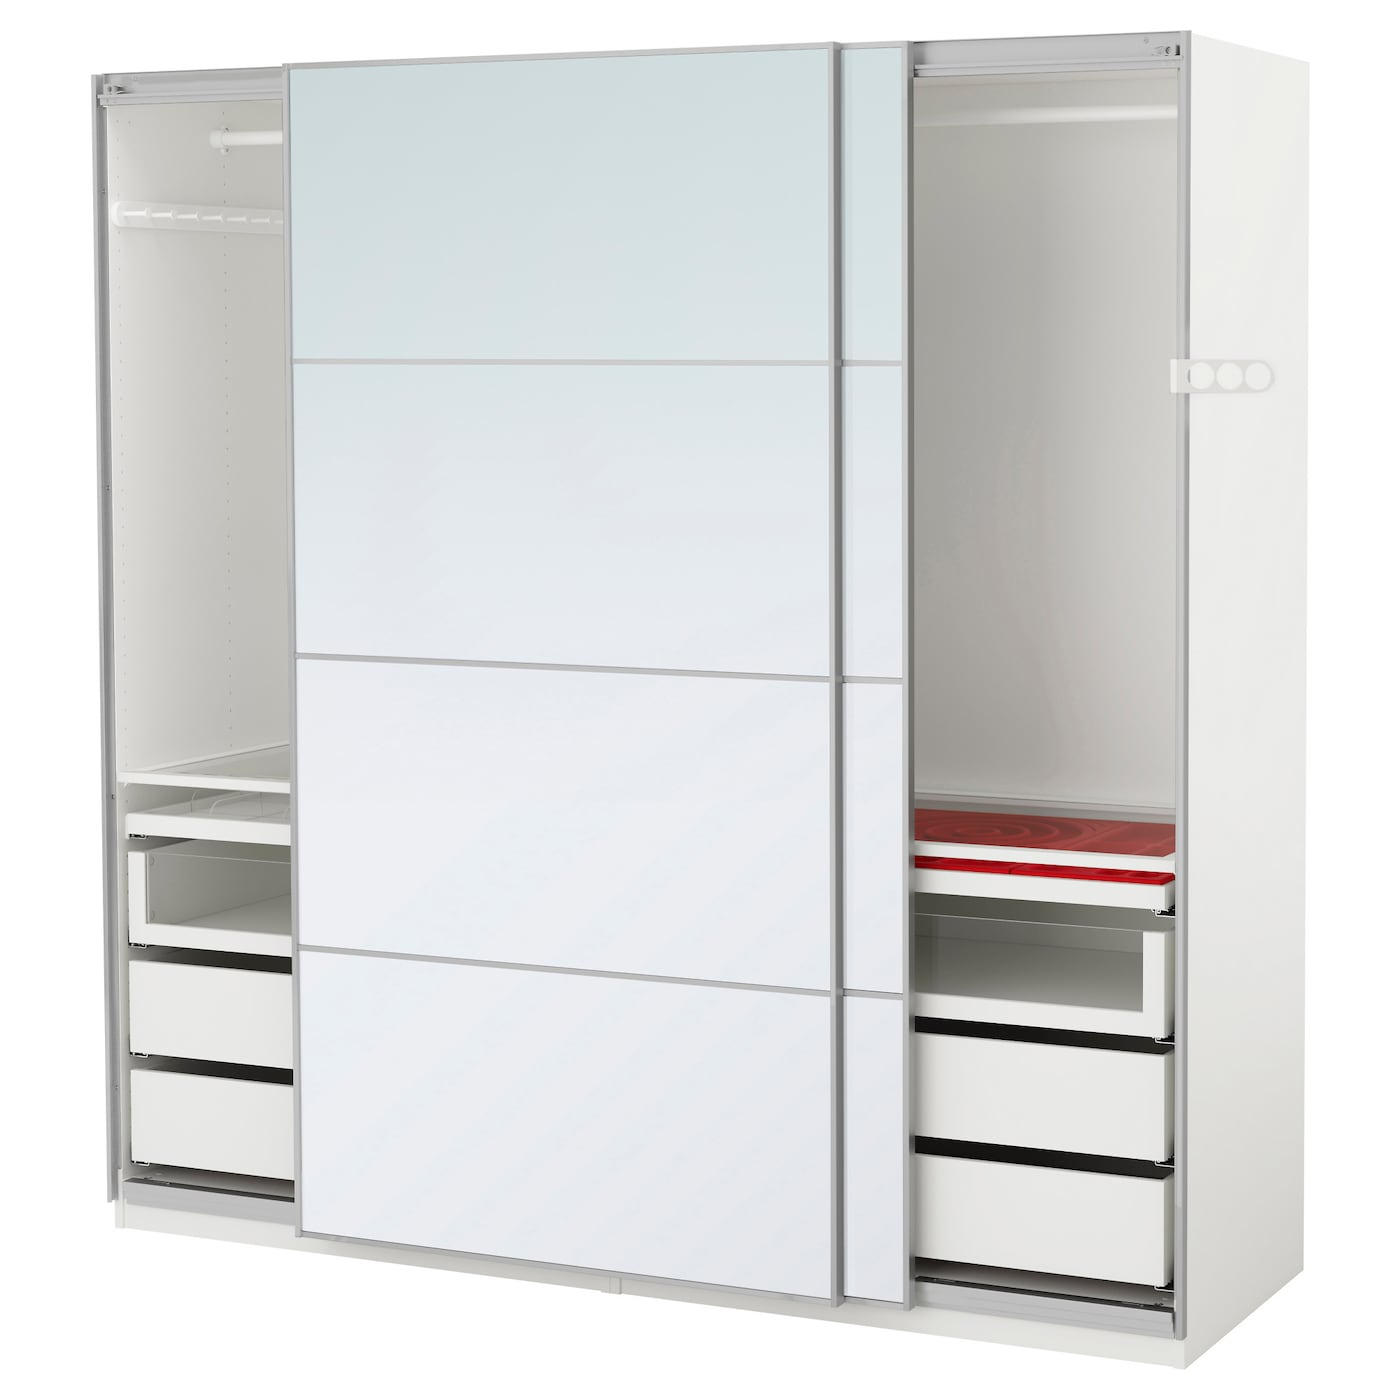 Wardrobe Combinations With Doors Ikea # Meuble Long Et Bas Ikea